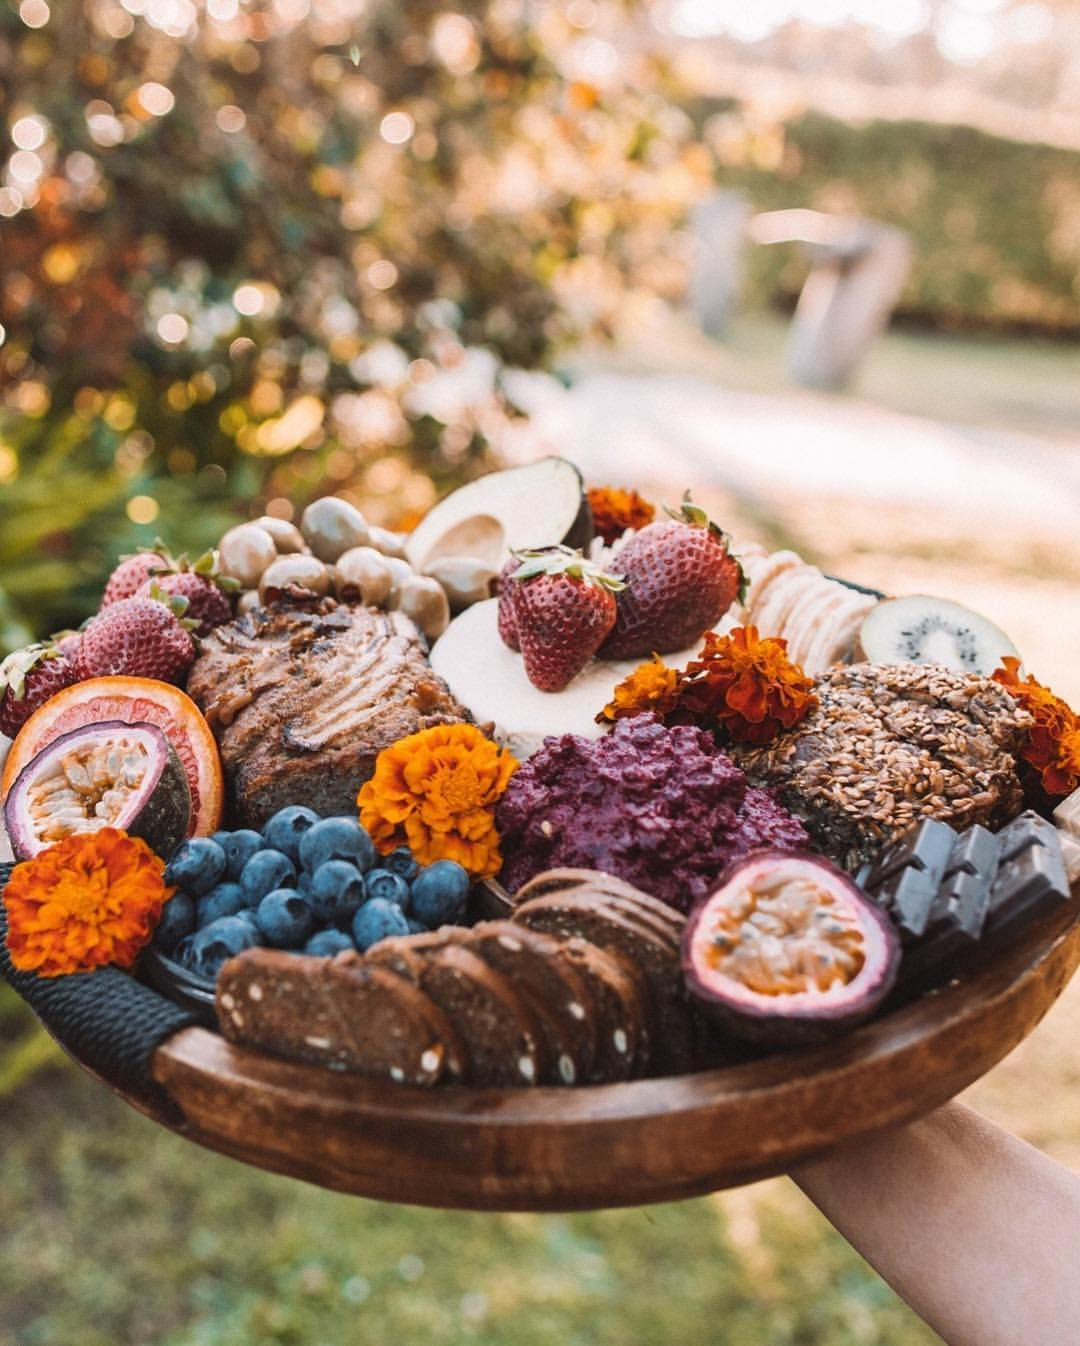 Luxe healthy springraces catering the mindfood platter